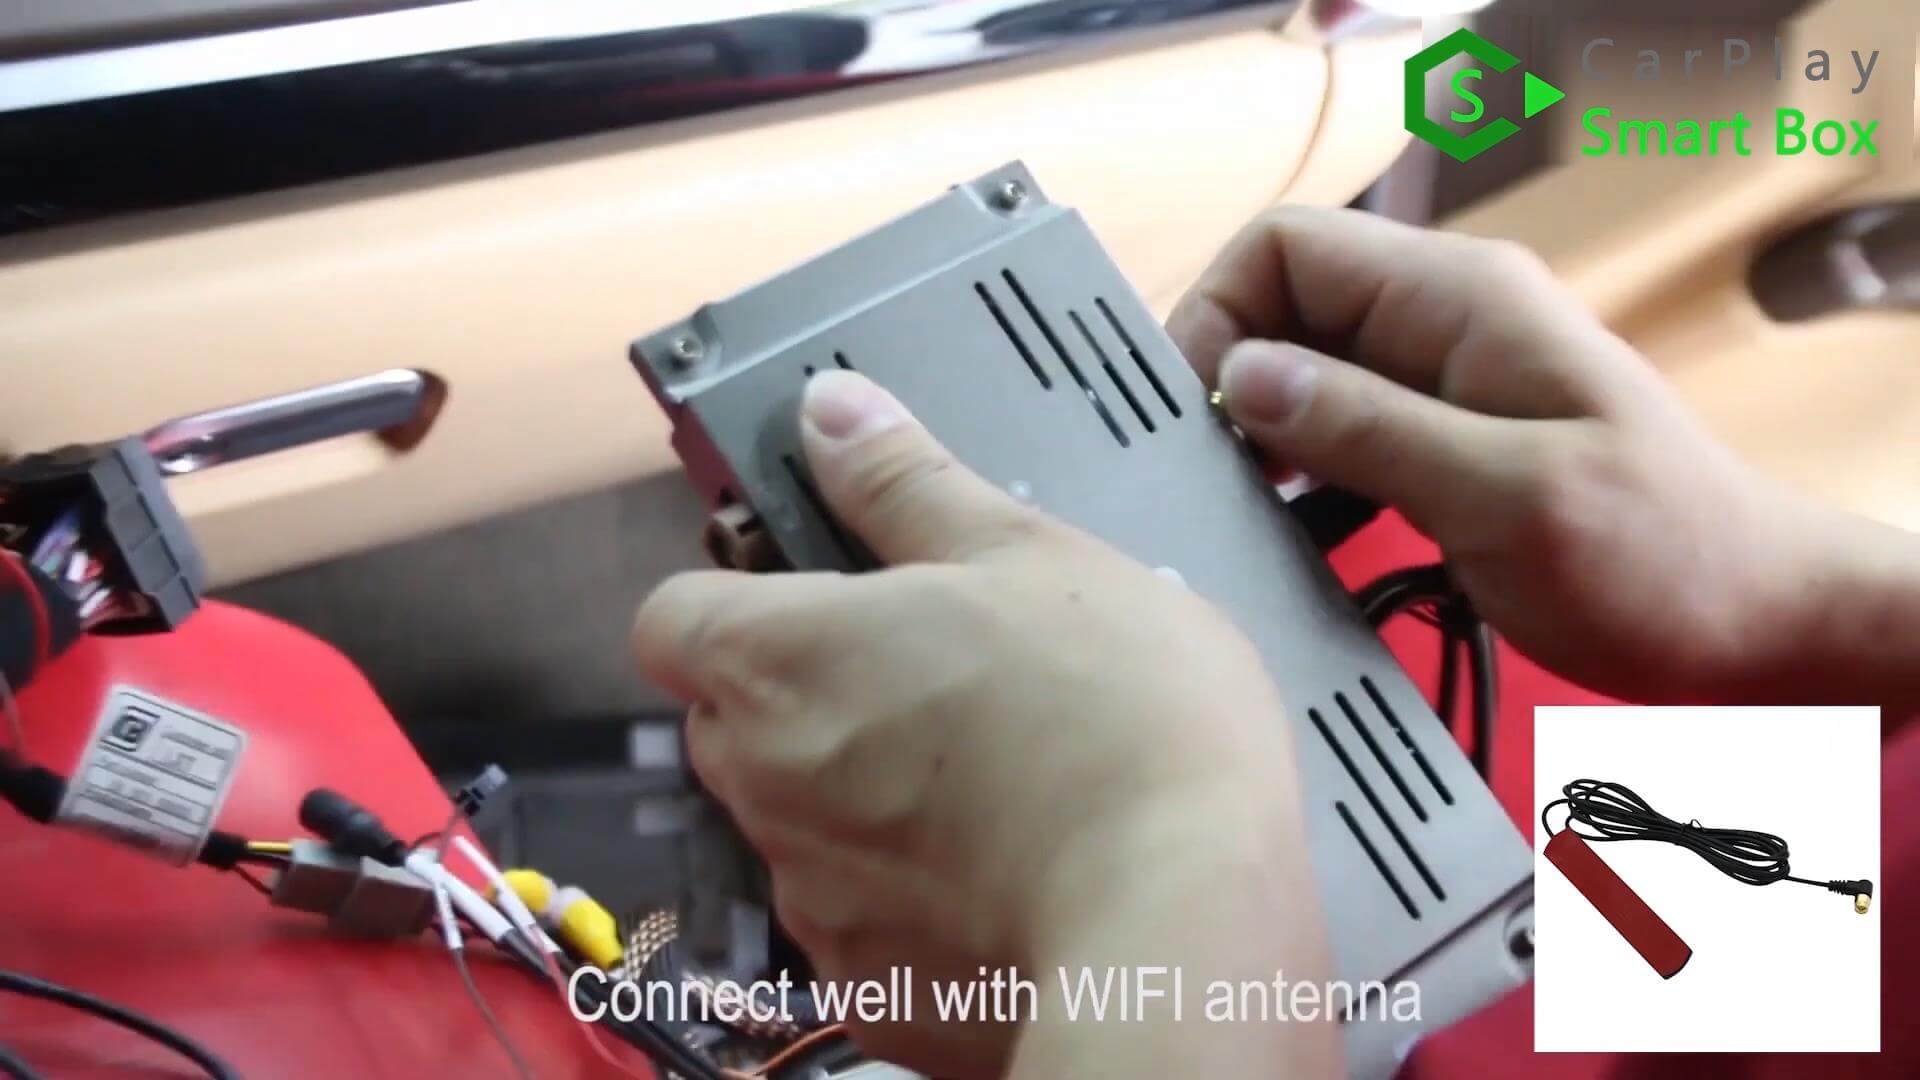 10. Connect well with WiFi antenna -  Step by Step Retrofit Porsche Cayenne PCM3.1 WIFI Wireless Apple CarPlay - CarPlay Smart Box